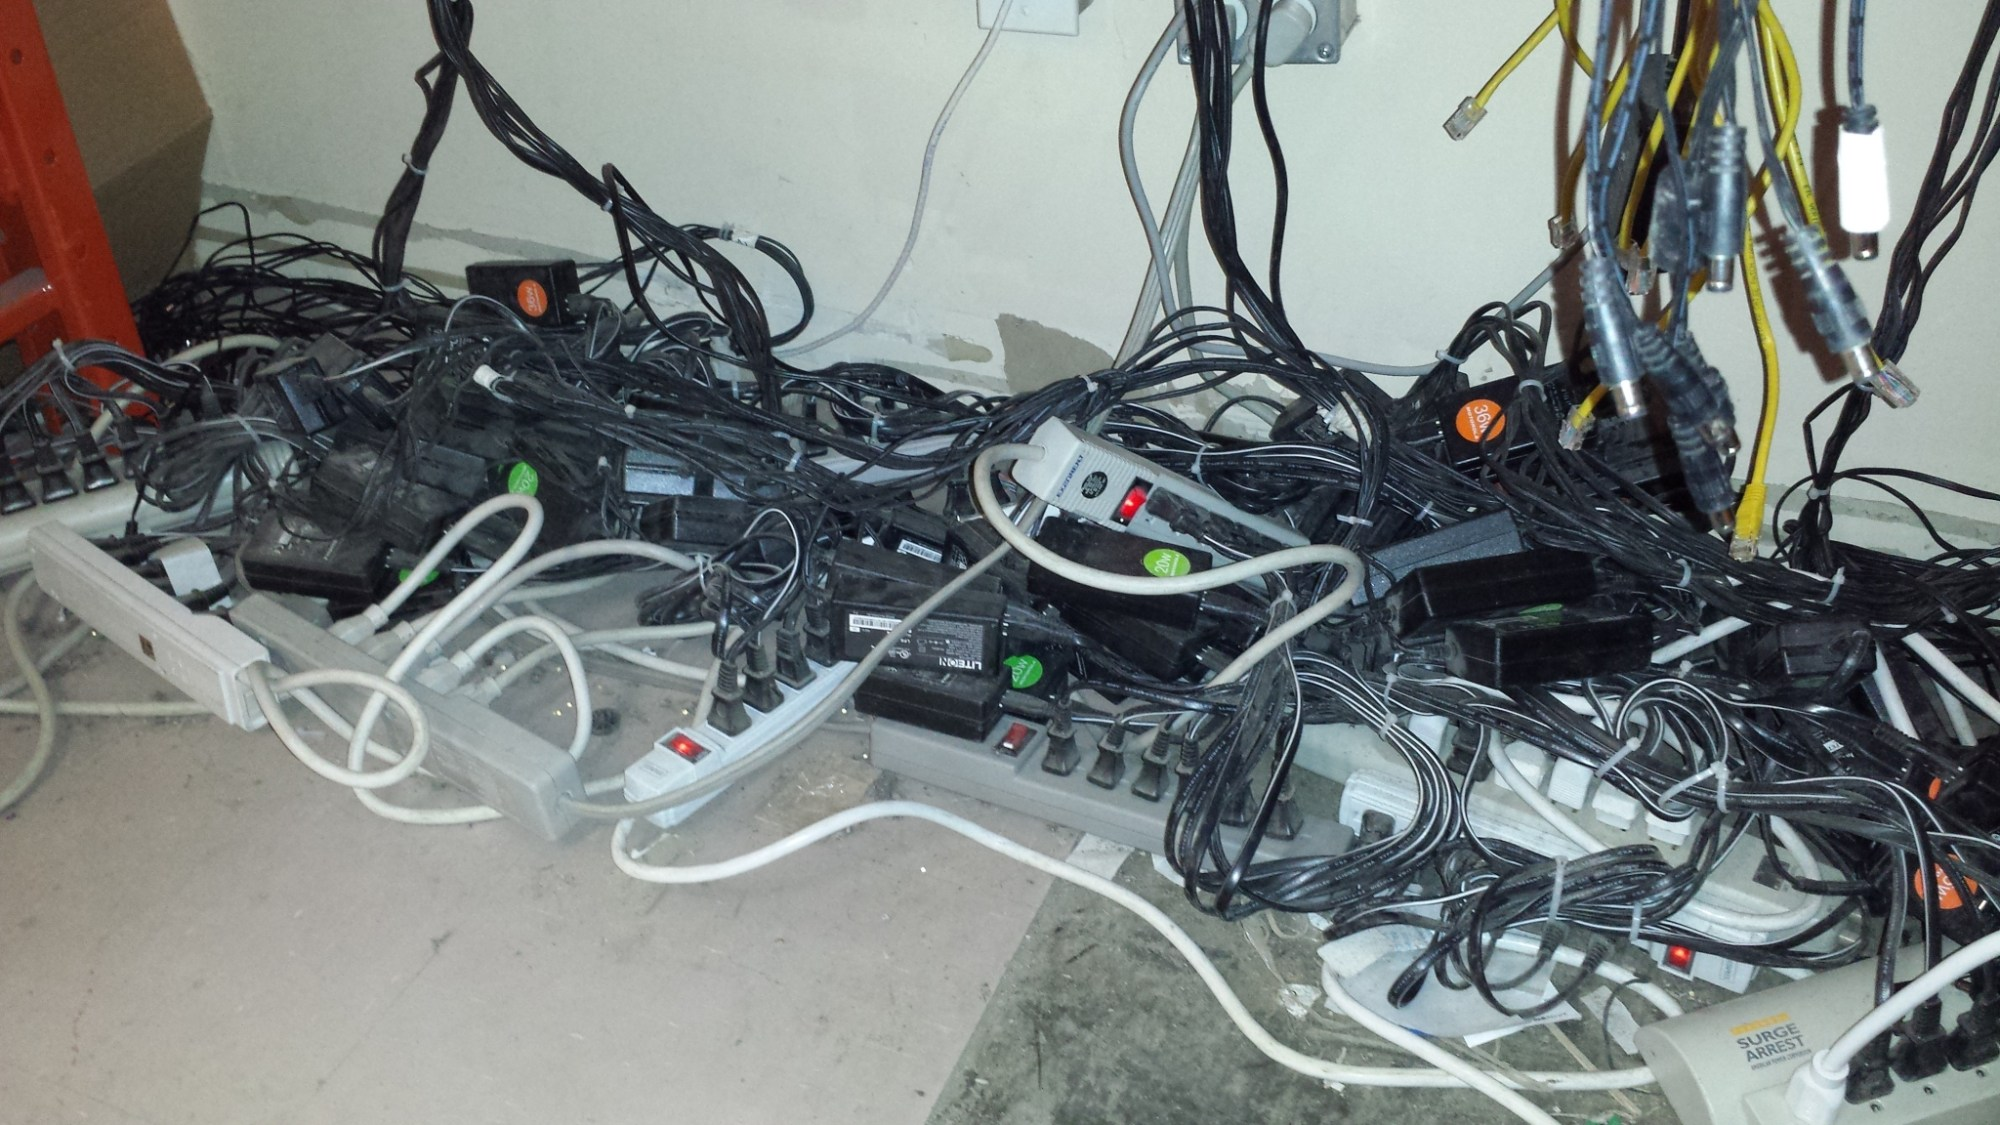 hight resolution of overloaded power strips